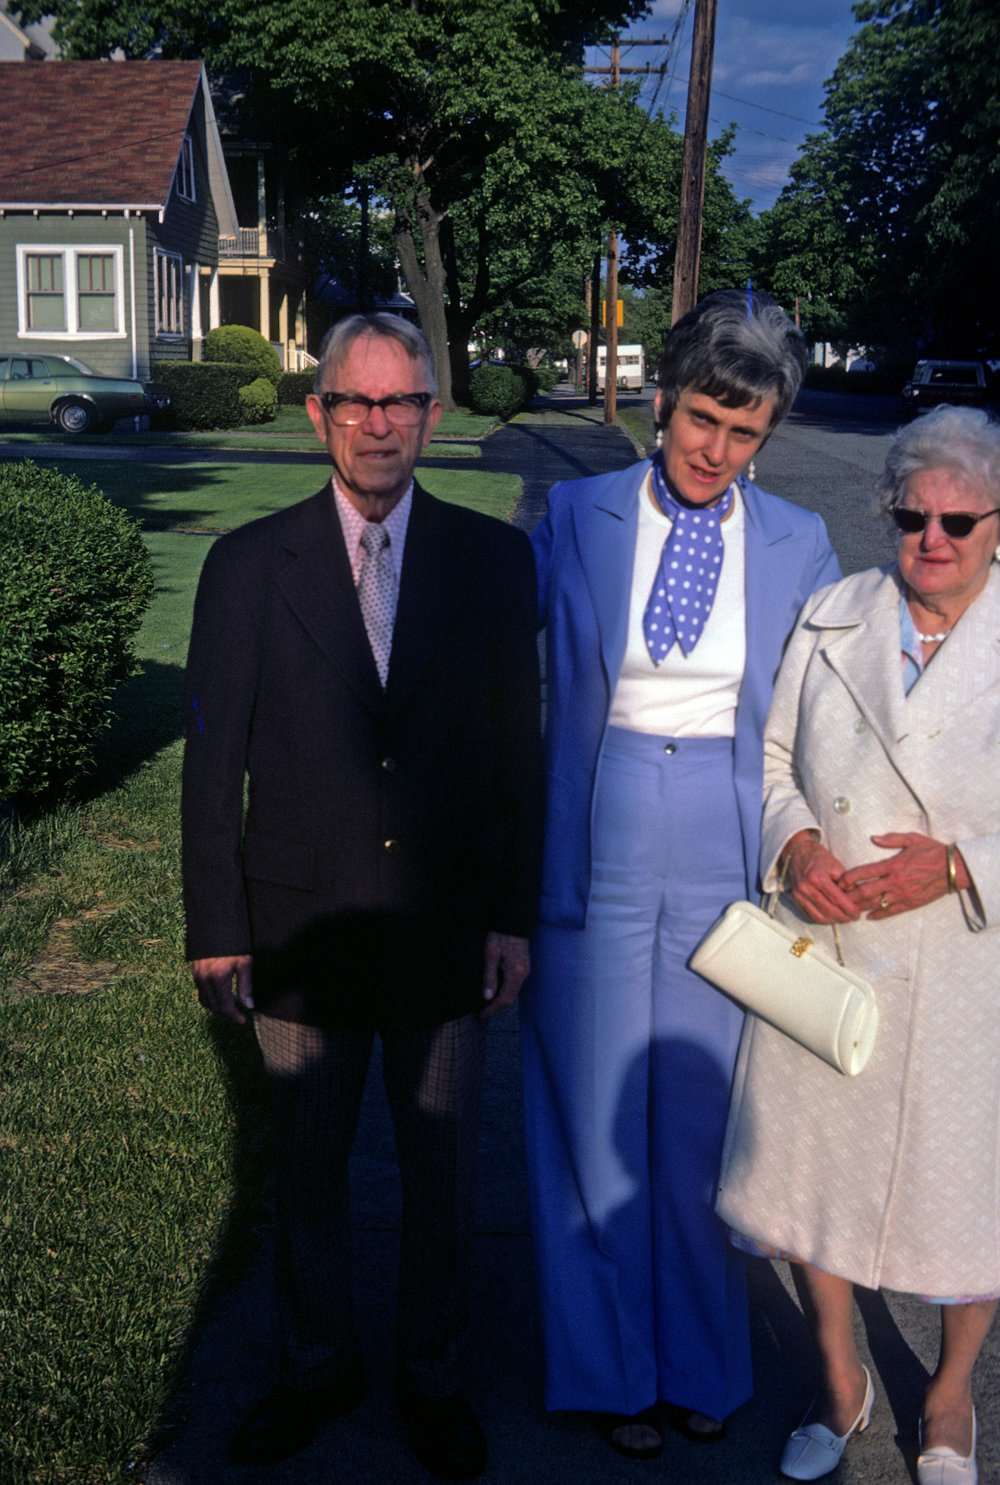 My gardening buddy, my grandfather Walter Gibbs, left, with my mom and grandmother